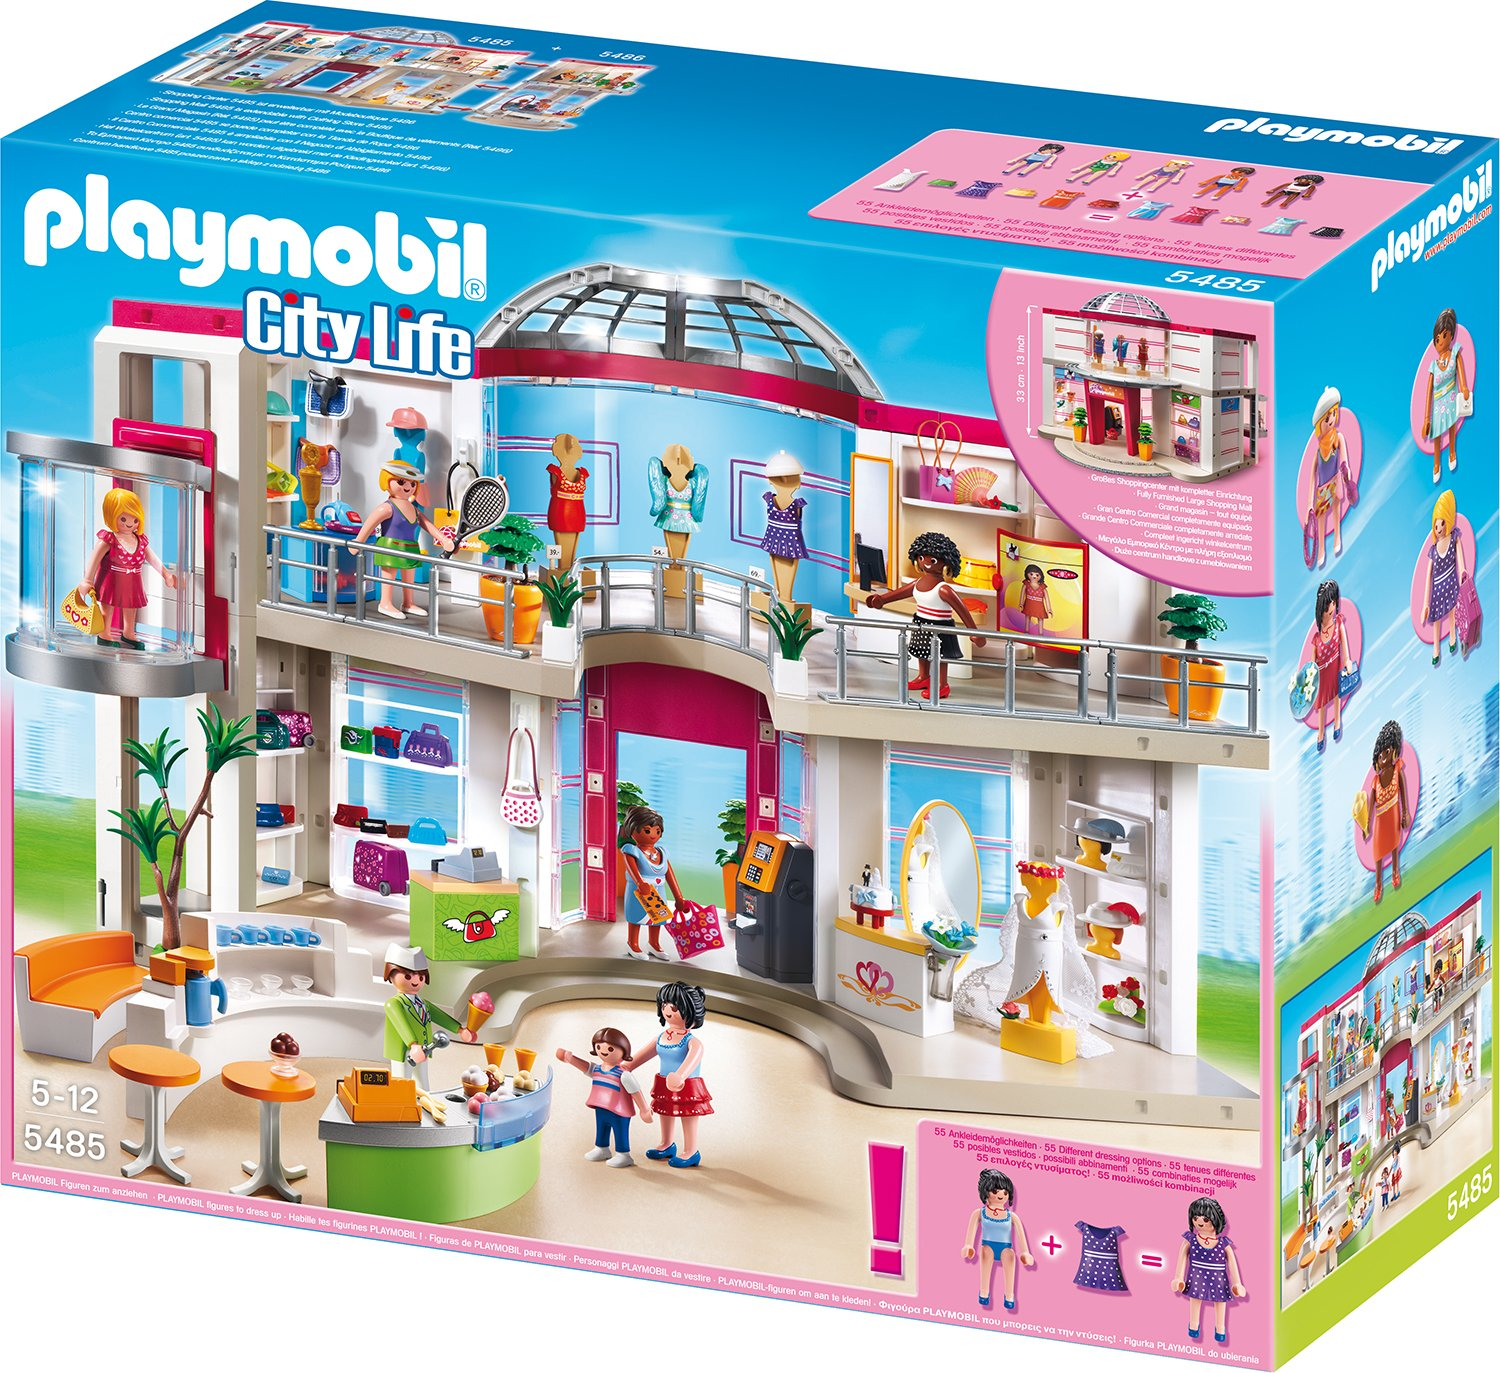 Playmobil City Life Küche Müller Playmobil Shopping Center 5485 Preisvergleich And Test